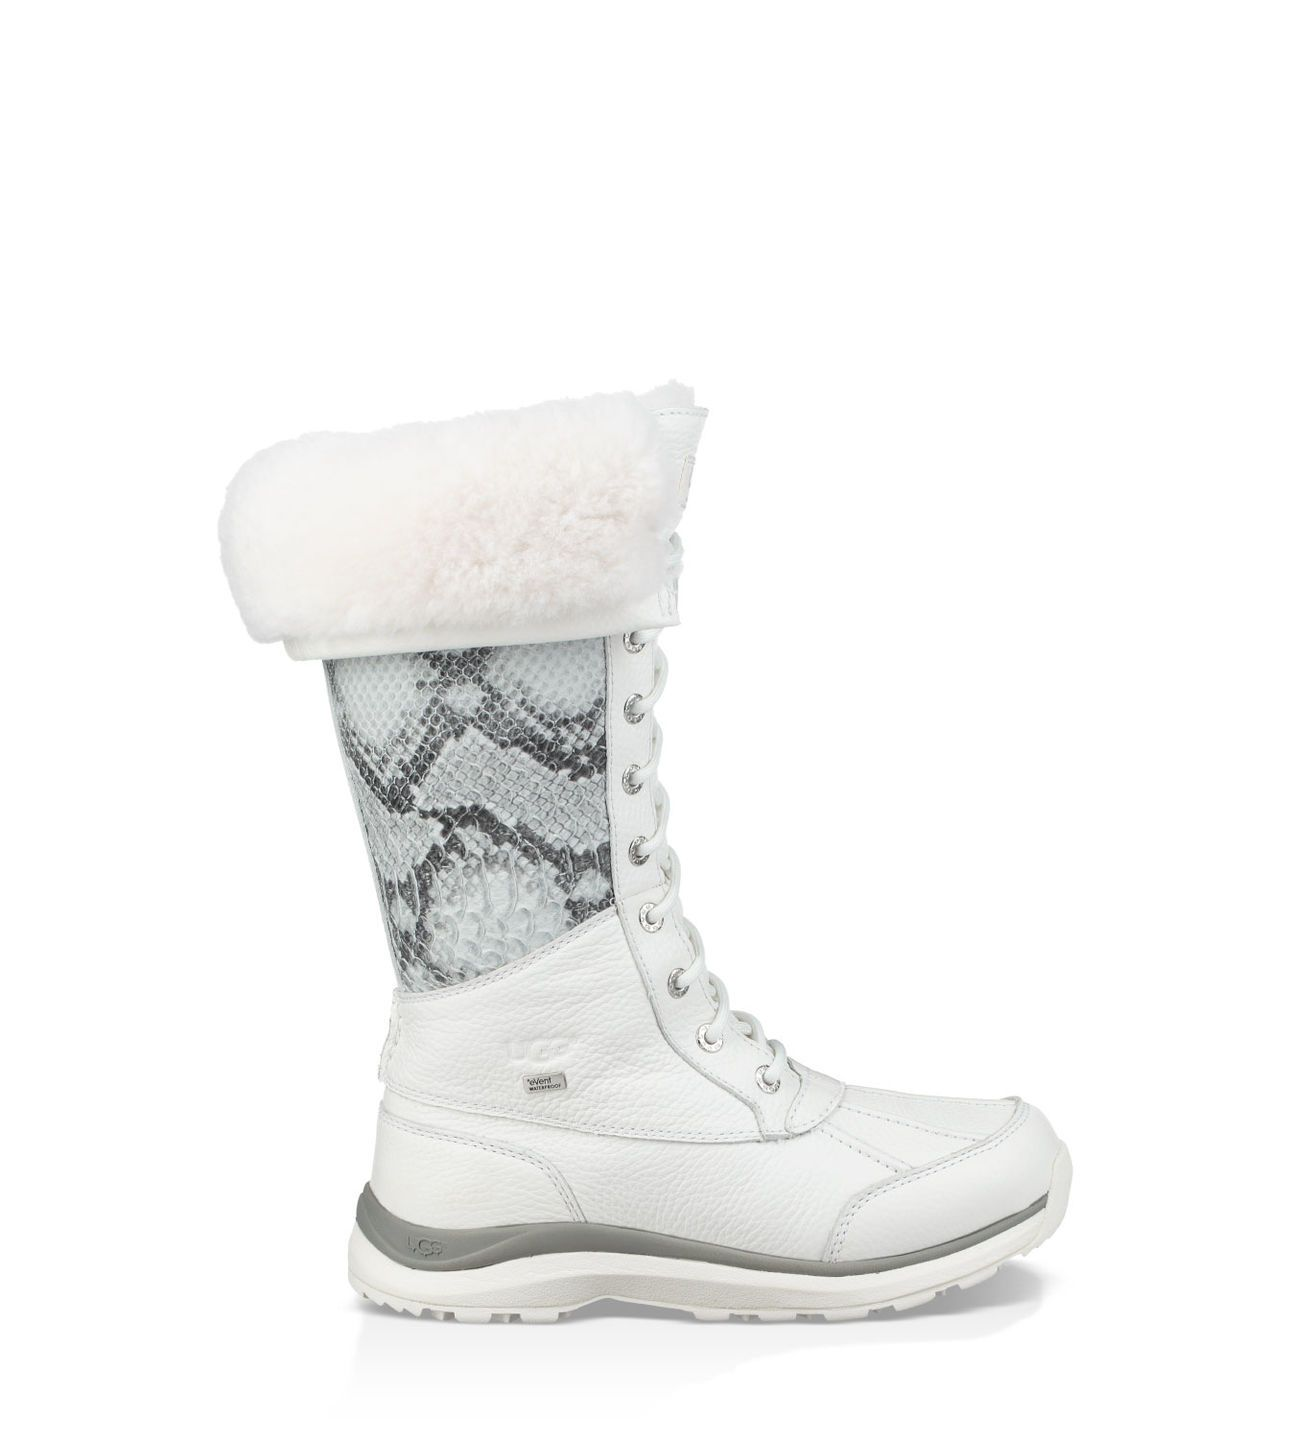 07172055434 Shop the Adirondack Tall III Snake Snow Boot, part of the Official ...